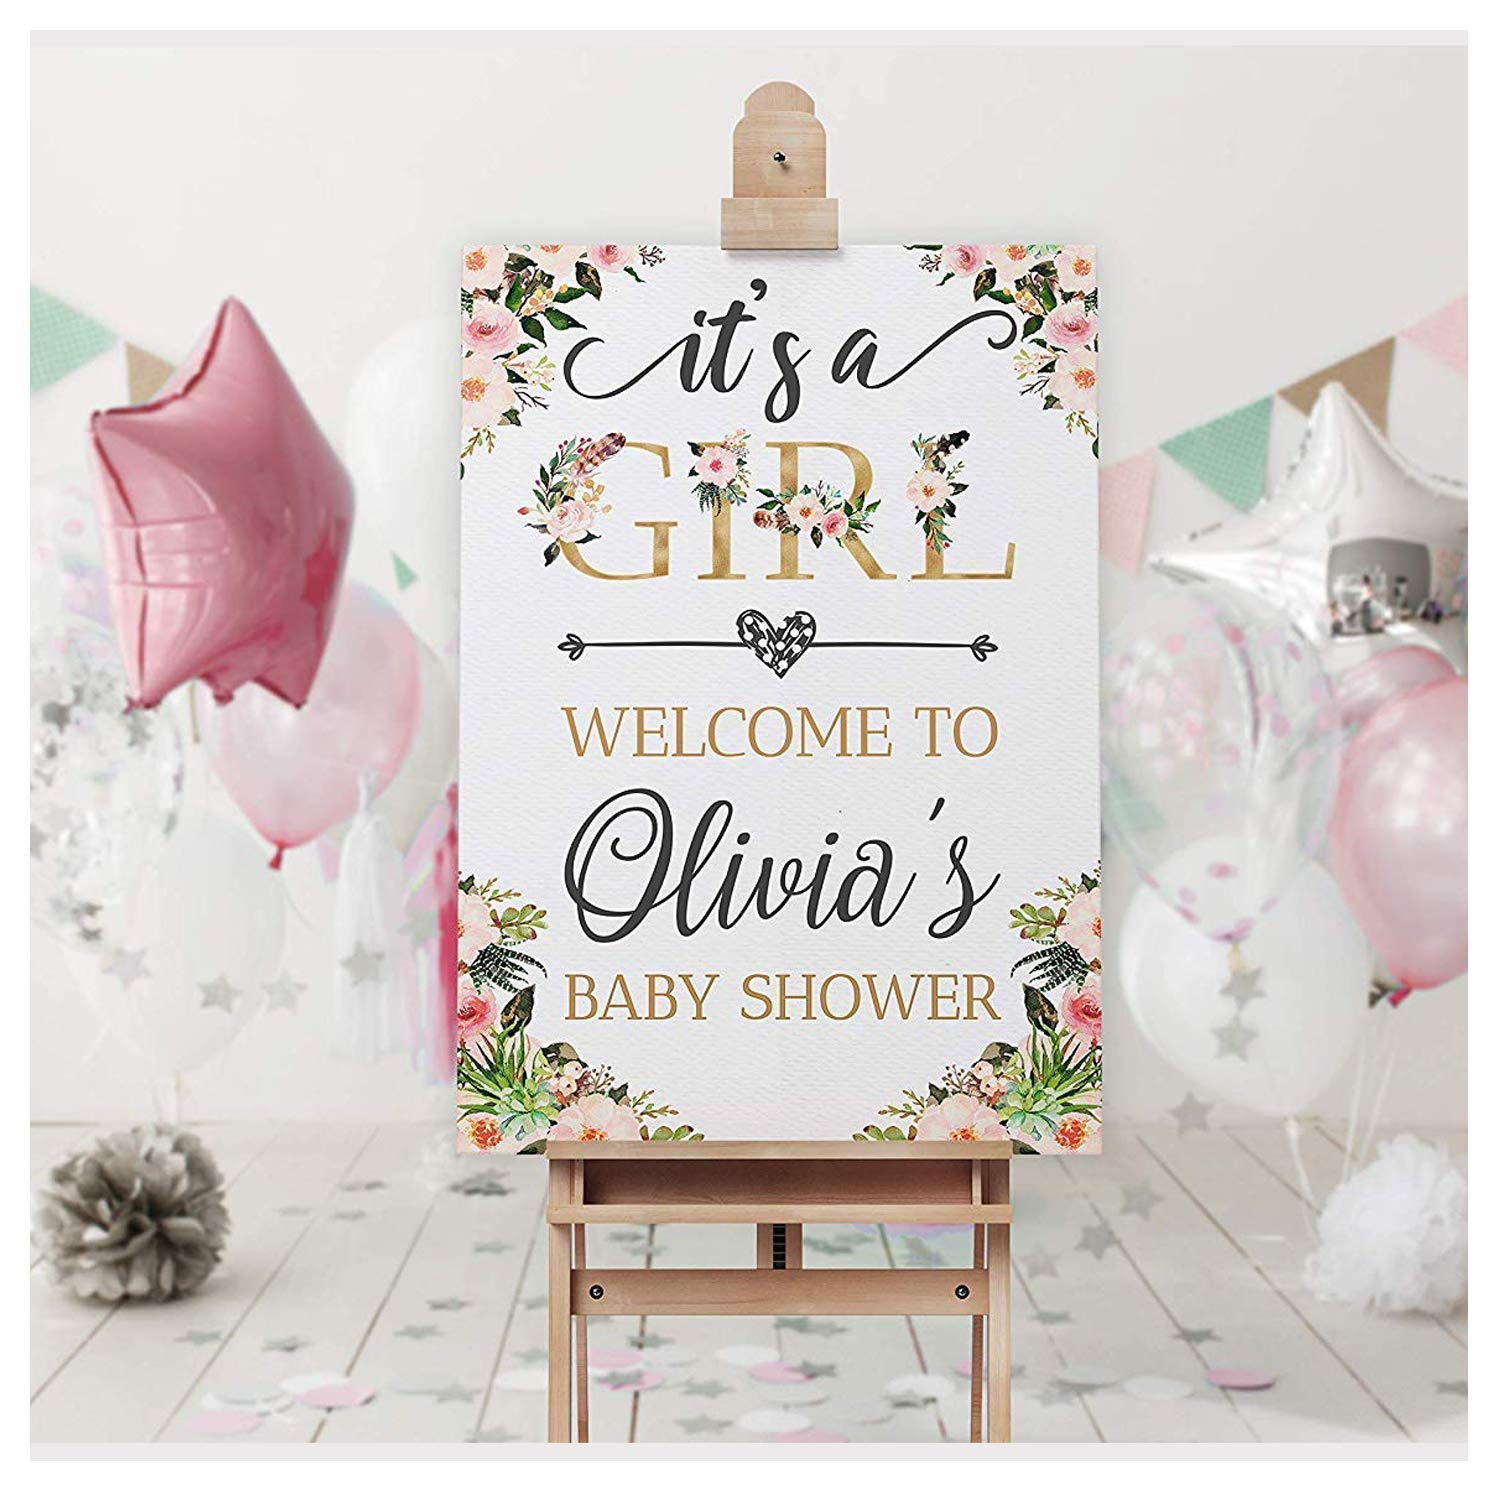 Floral Boho Baby Shower Sign, Size 24x18, 36x24, 48x36 Baby Shower Props, Boho Chic Decor, Bohemian Its a Girl, Baby Welcome Sign, Flower Baby Shower Decorations, Party Supplies, Baby Girl Party Decor